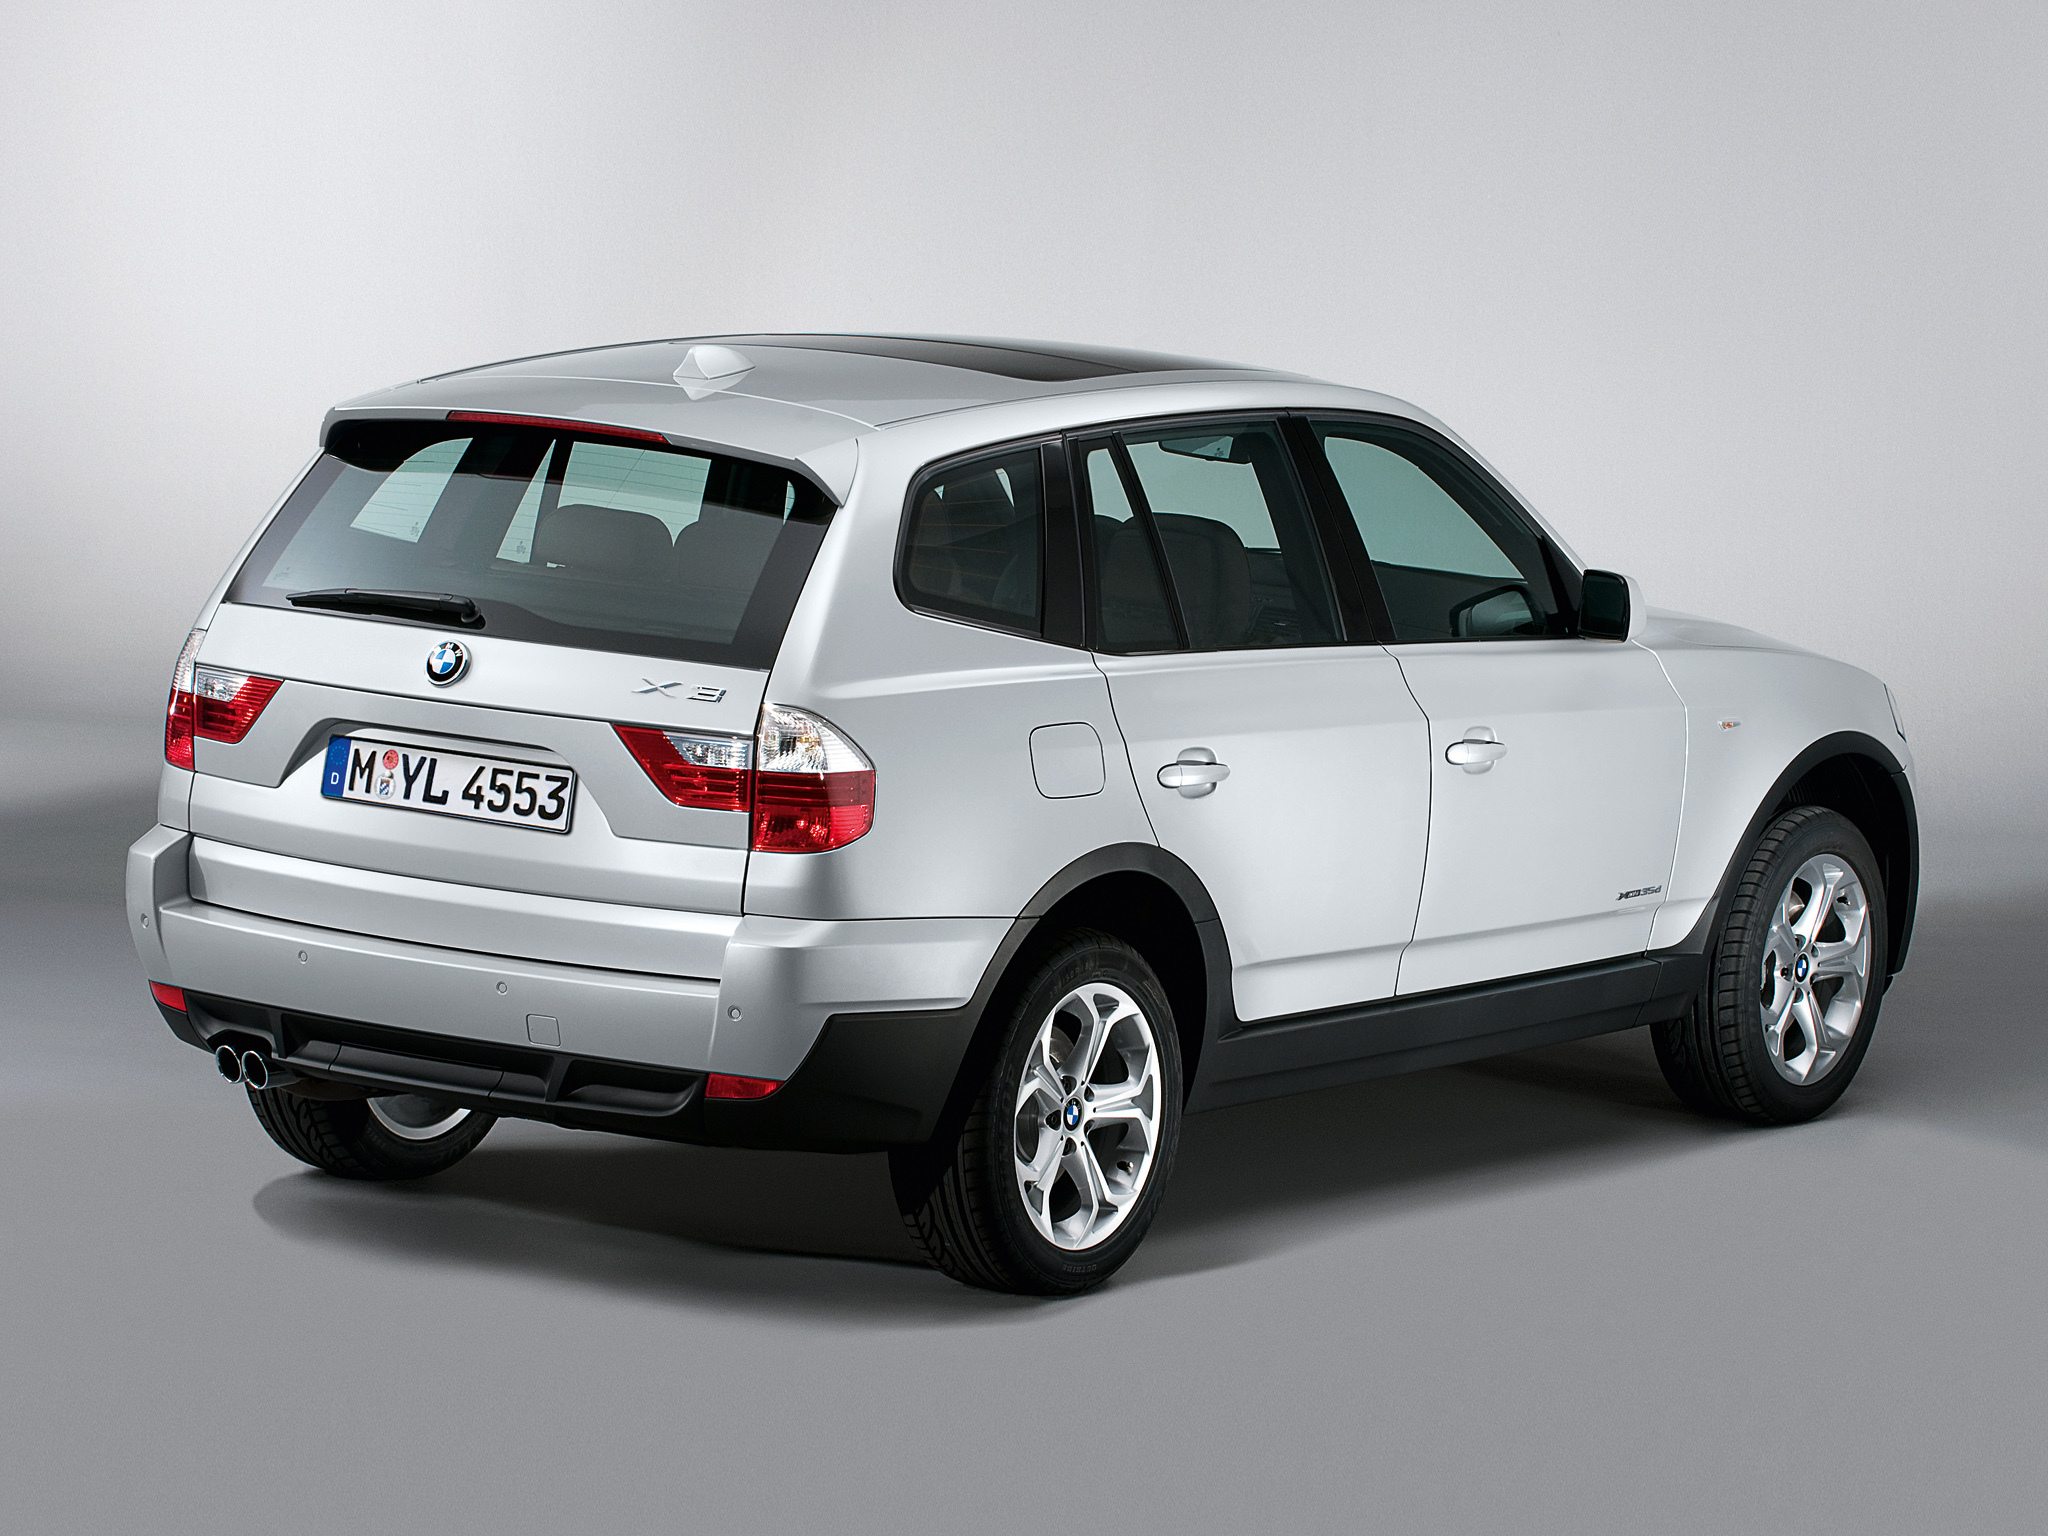 BMW X3 xDrive35d 2008 photo - 1